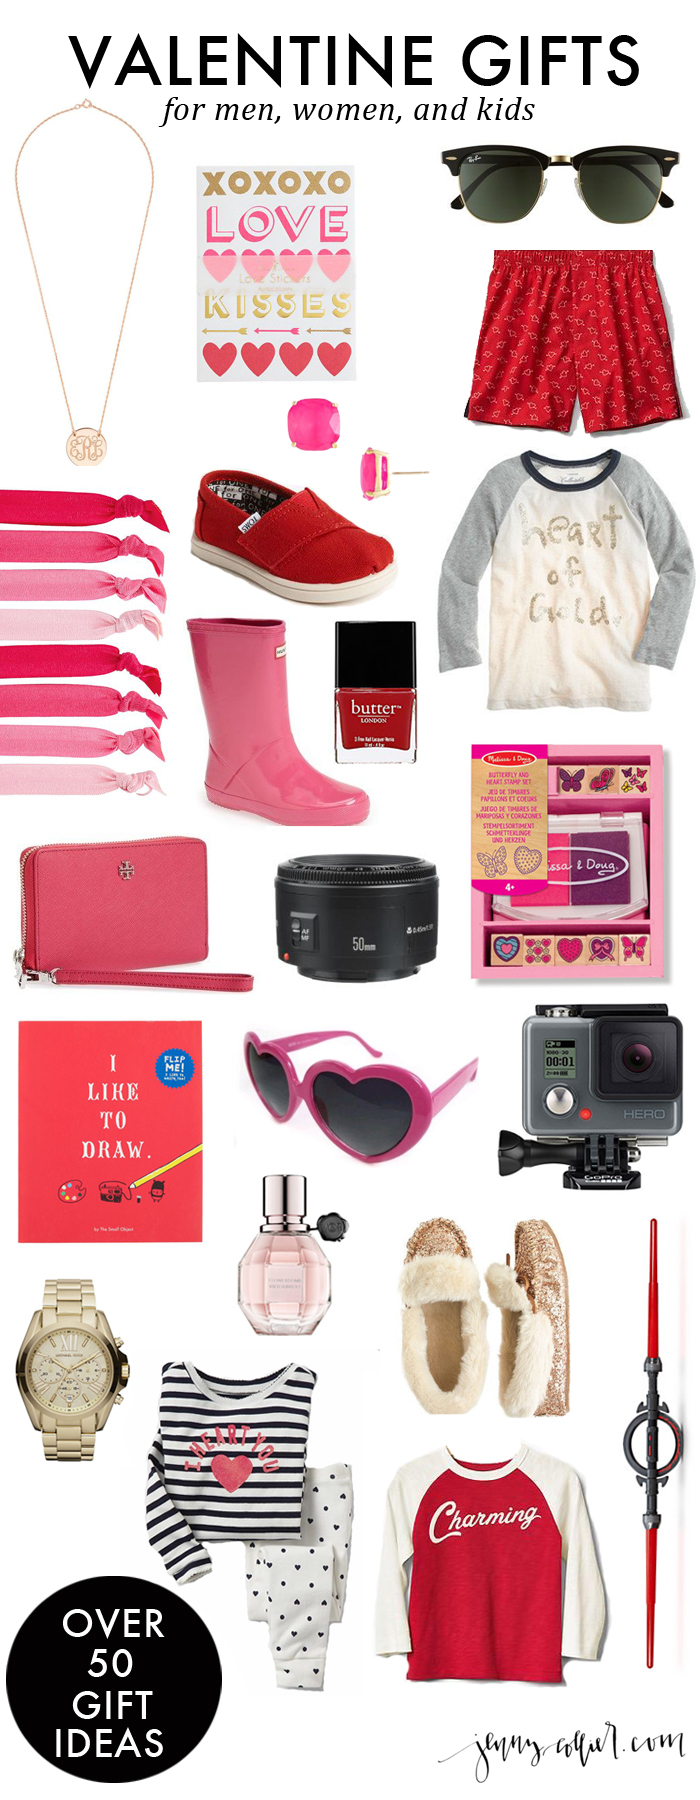 Valentine gifts for men women and kids jenny collier blog for Great valentine gifts for guys